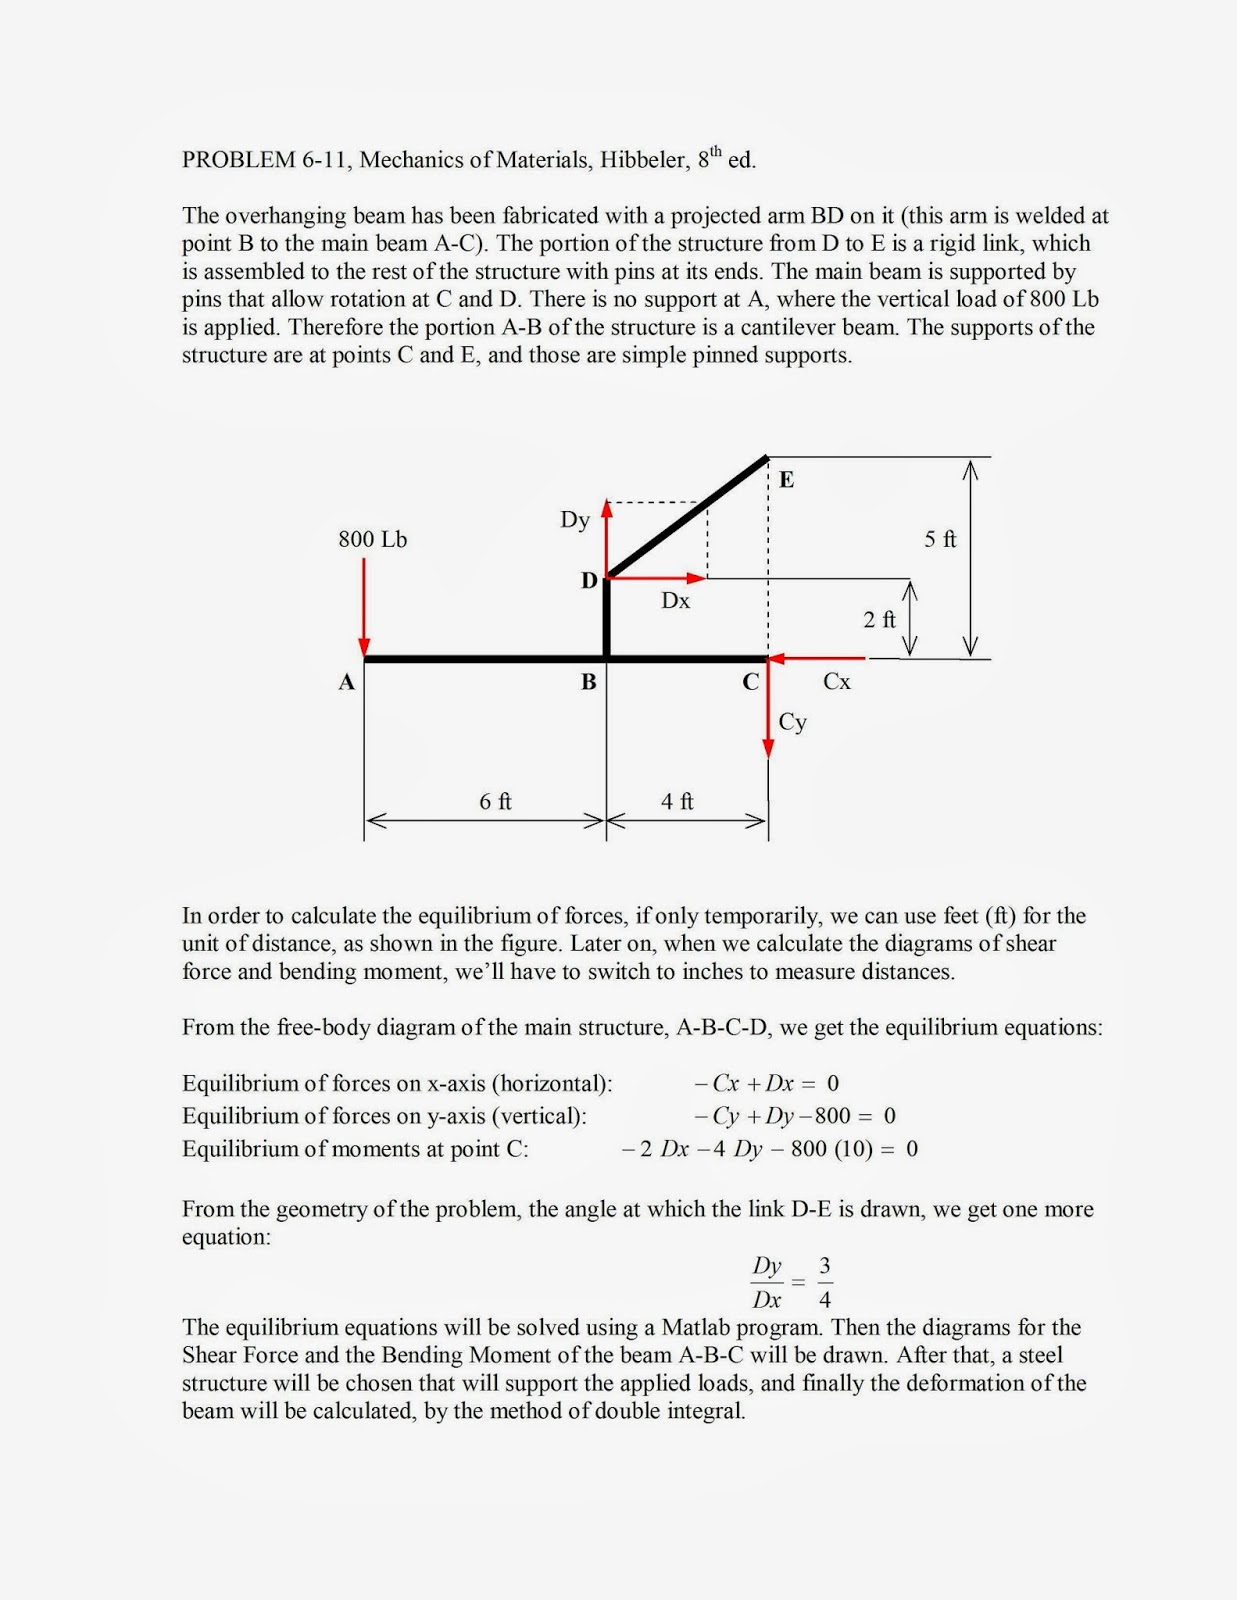 Mechanics shear force and bending moment diagrams using matlab problem 6 11 of mechanics of materials hibbeler 8th edition is solved using a matlab program pooptronica Choice Image